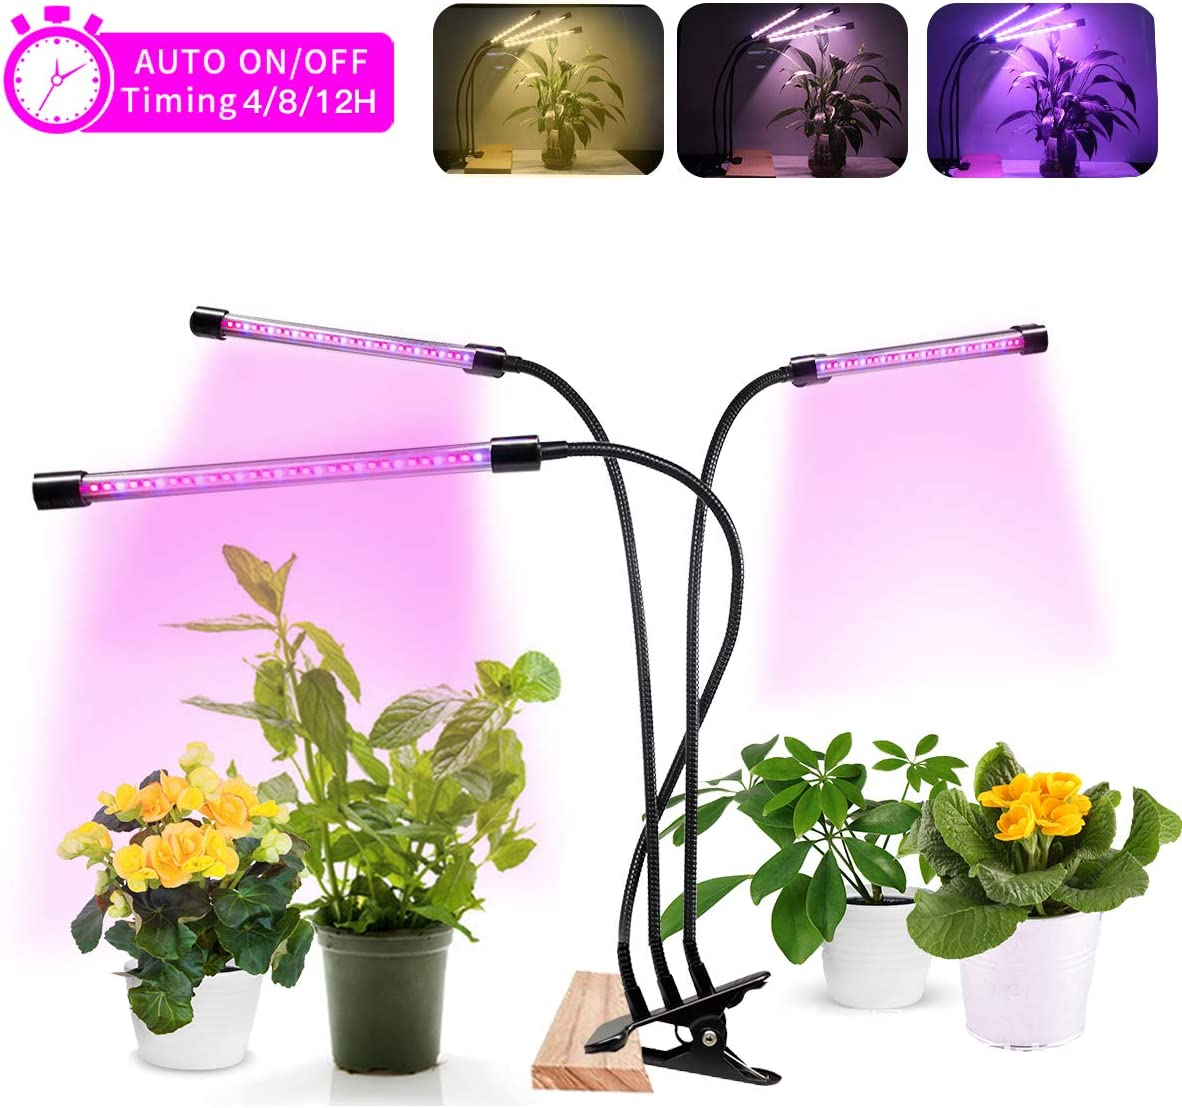 LED Grow Light for Indoor Plants, 75W 90 LED Clip-on Plant Light for Small Plants, Full Spectrum with 3 Modes 5-Level Brightness,Auto On Off Timing 4H 8H 12H